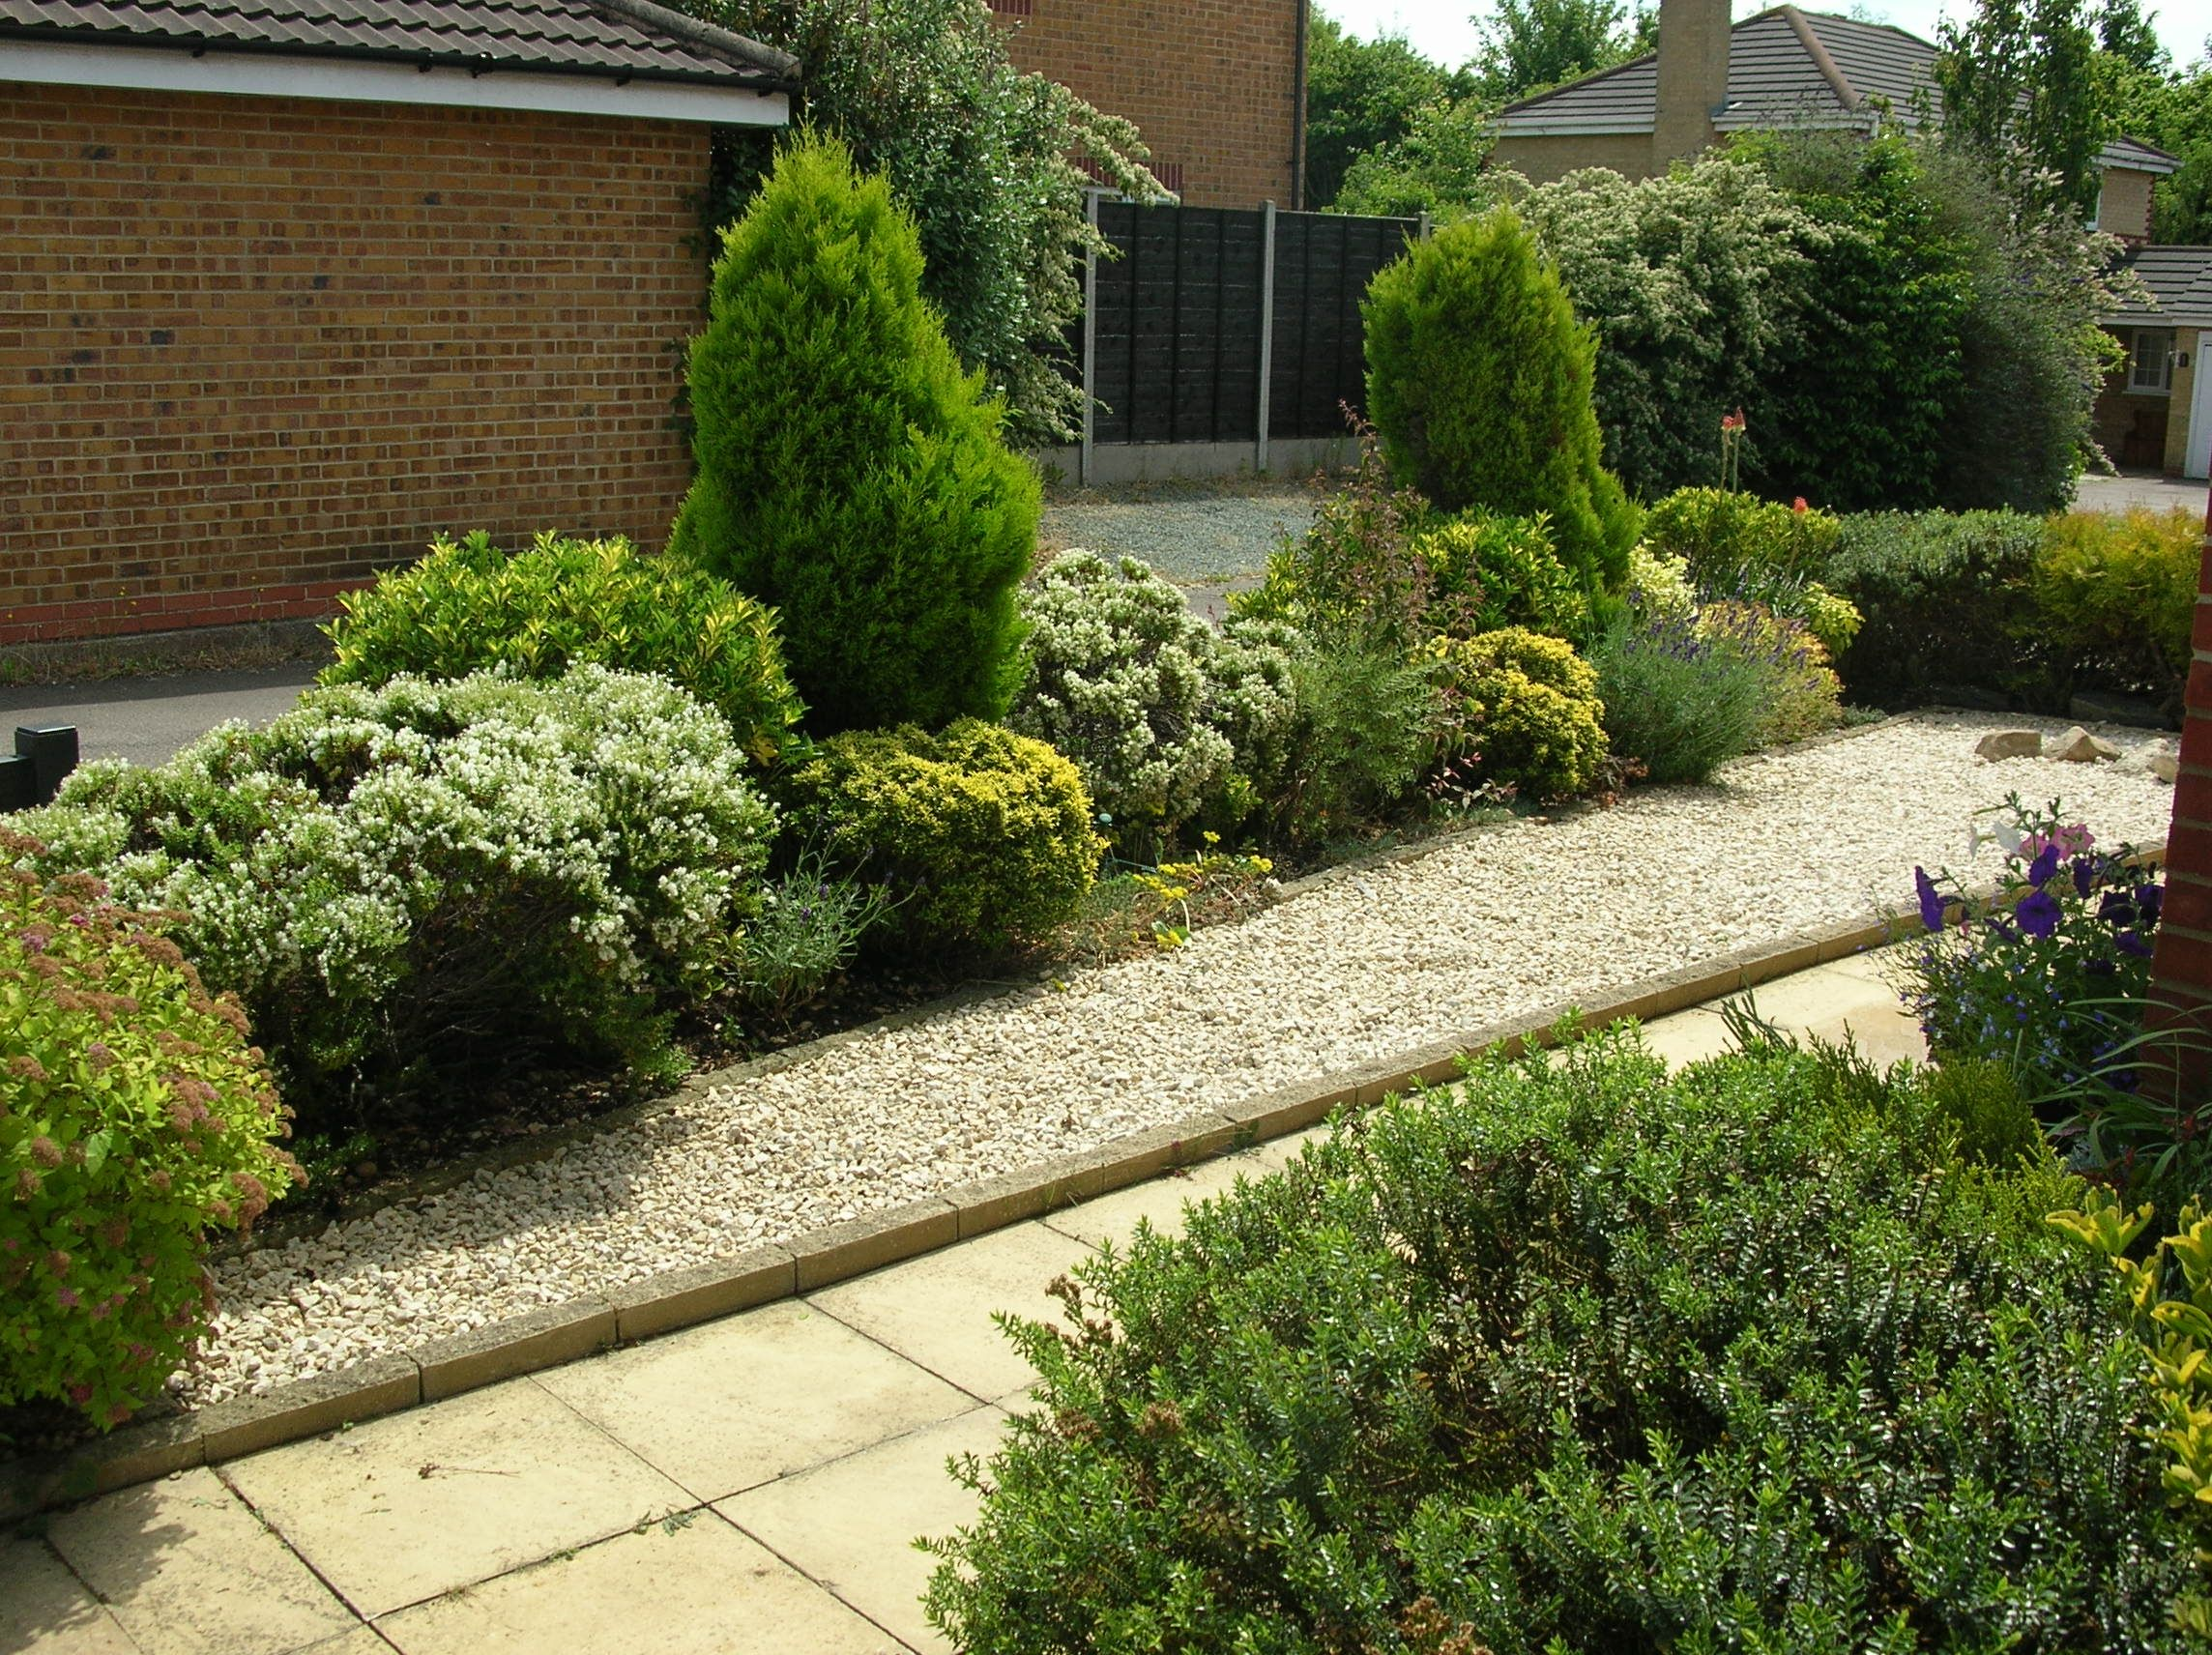 Cotswold chippings used in garden border to complement green shrubs cotswold chippings used in garden border to complement green shrubs and plants workwithnaturefo